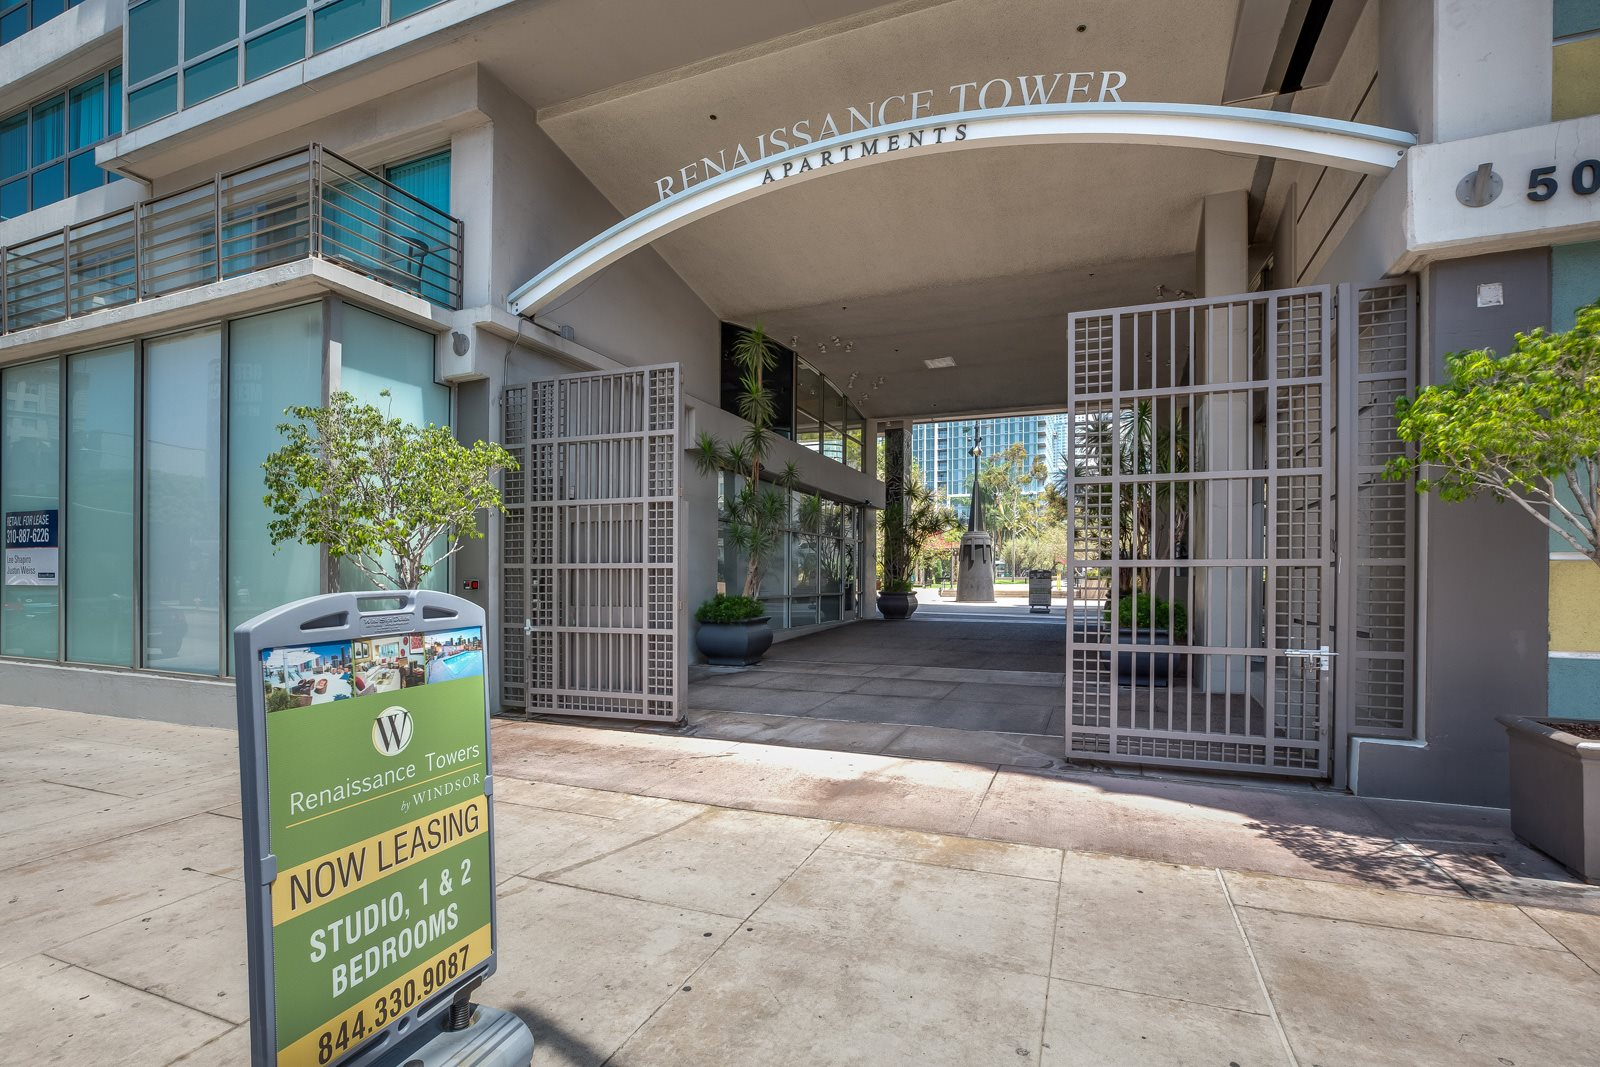 VIP Tours Available at Renaissance Tower, 501 W. Olympic Boulevard, CA